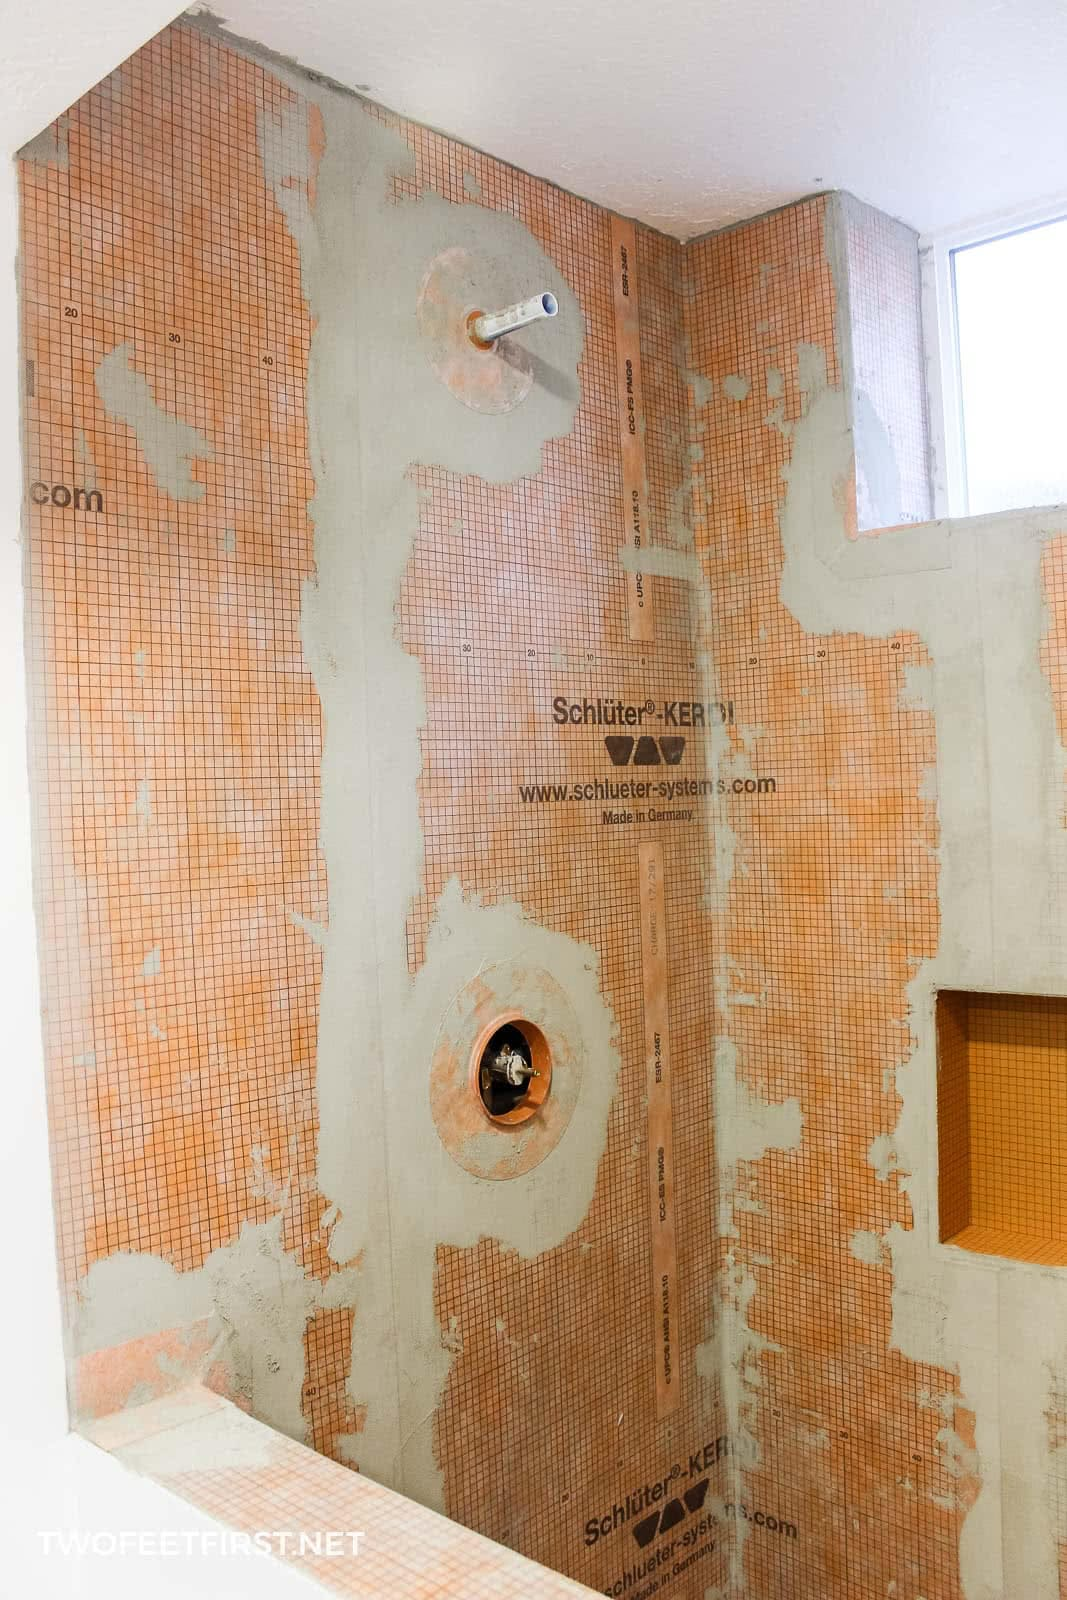 how to install Schluter Kerdi shower system